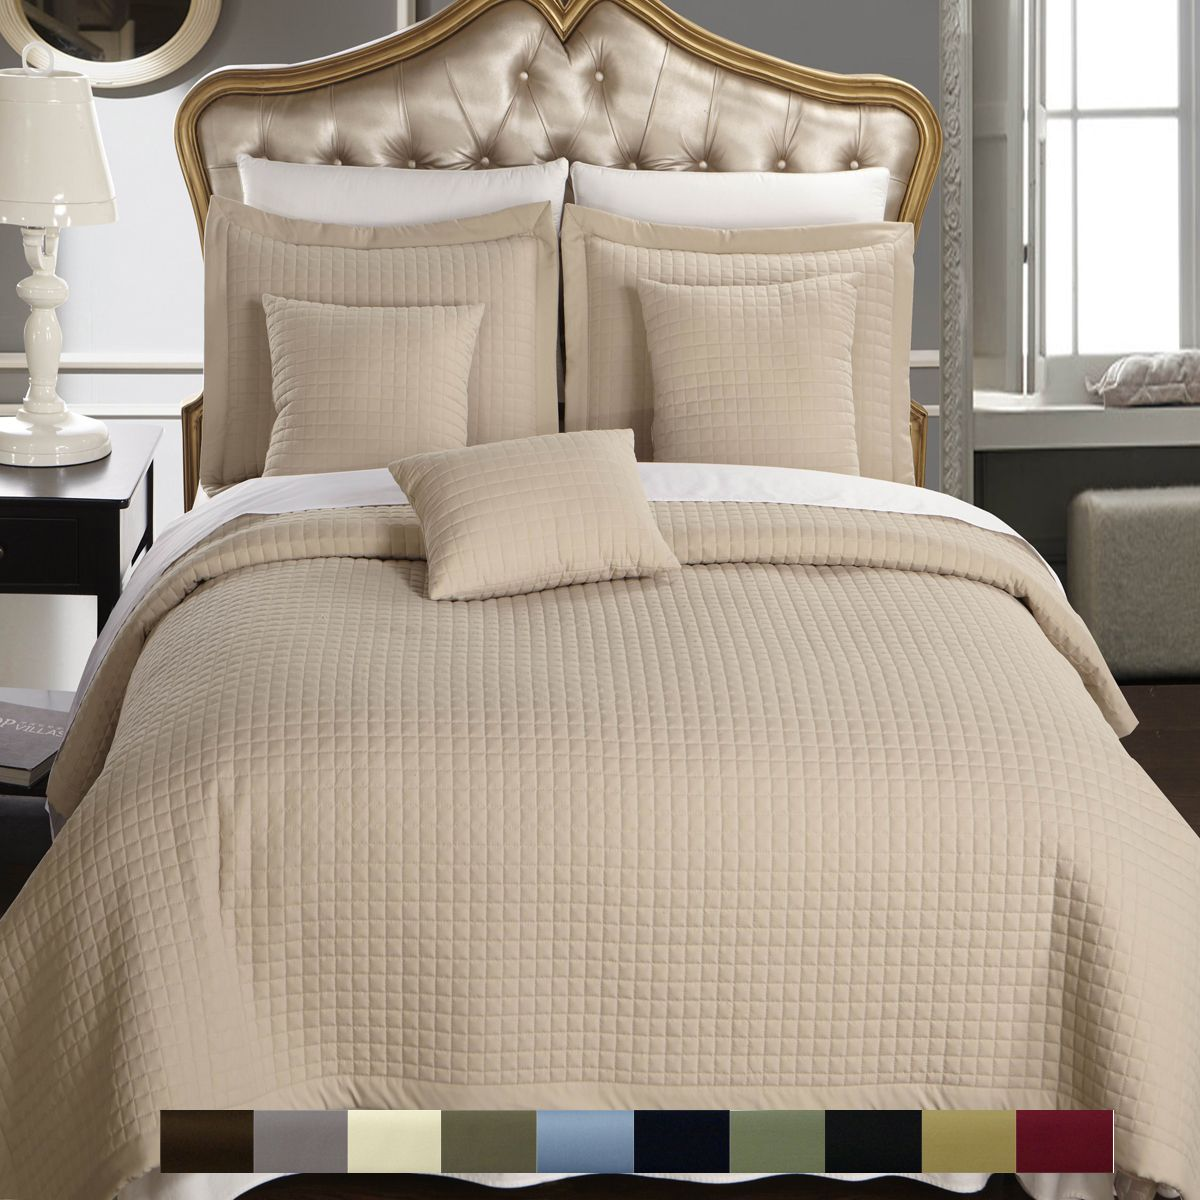 Discount Duos - Checkered Quilted Wrinkle Free Multi-Piece Coverlet Set, $69.99 (http://discountduos.com/checkered-quilted-wrinkle-free-multi-piece-coverlet-set/)